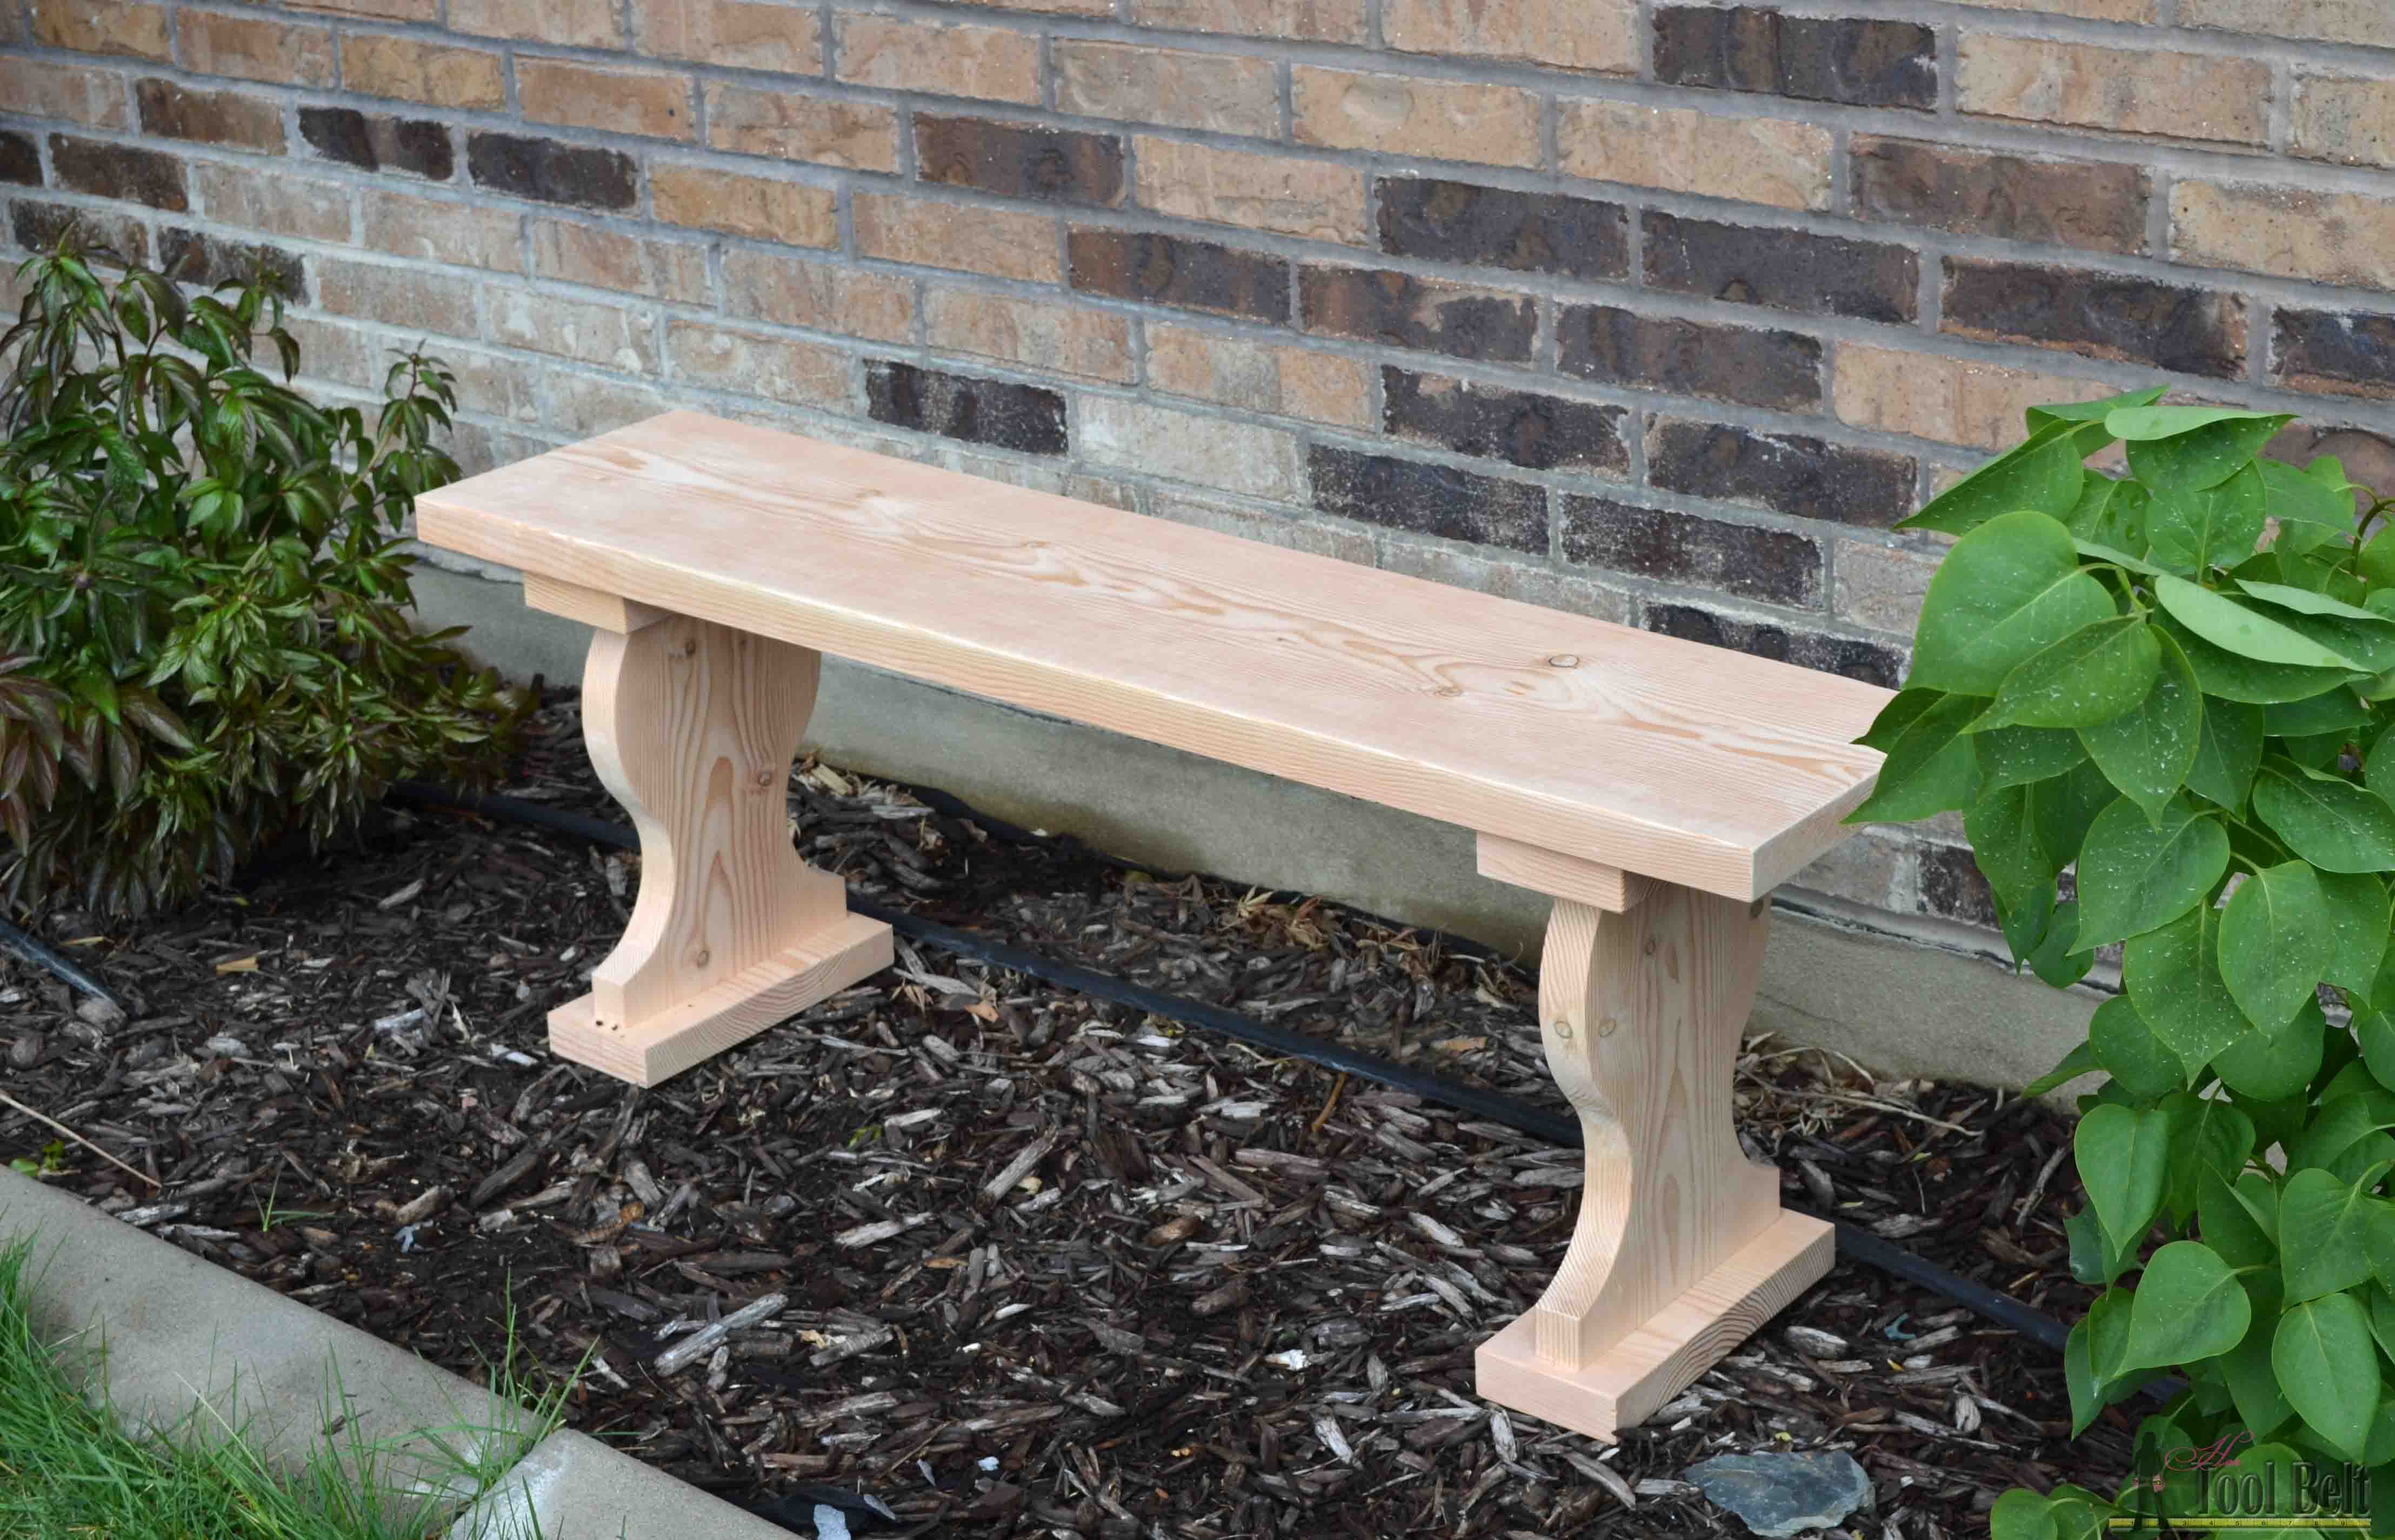 Outdoor Garden Bench Her Tool Belt